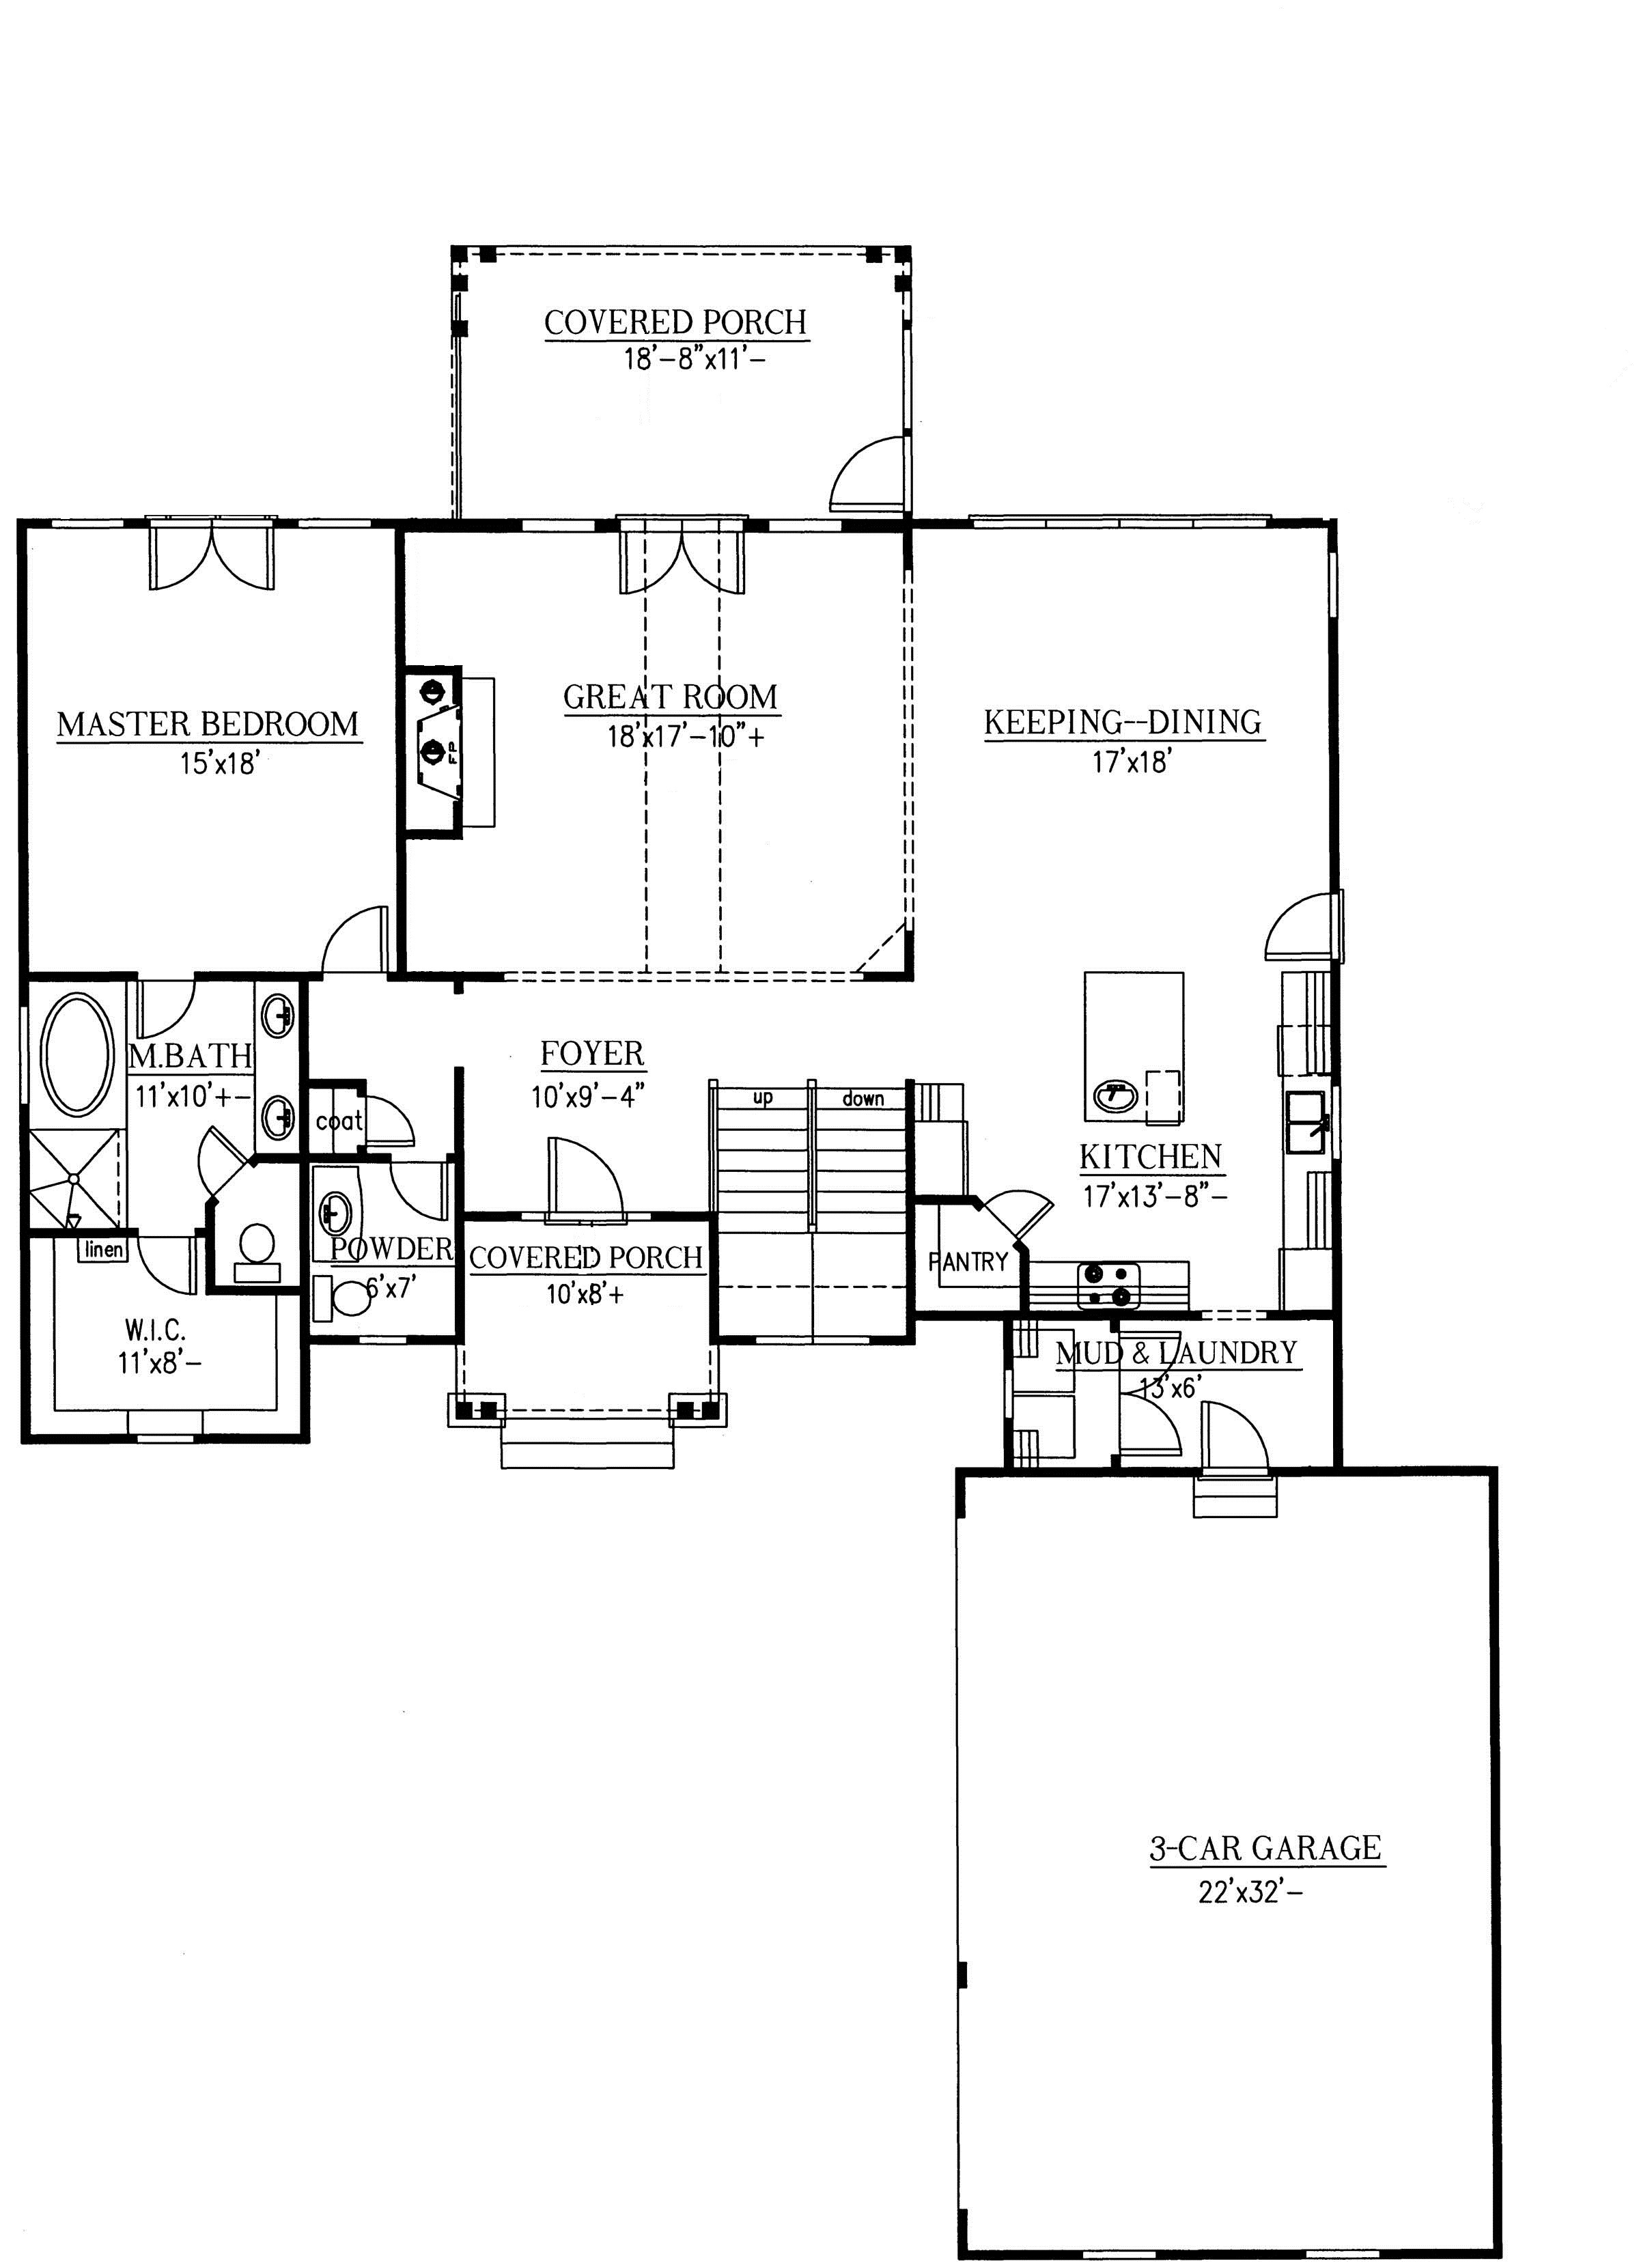 Great room with loft first floor plan sdl custom homes for Great room plans